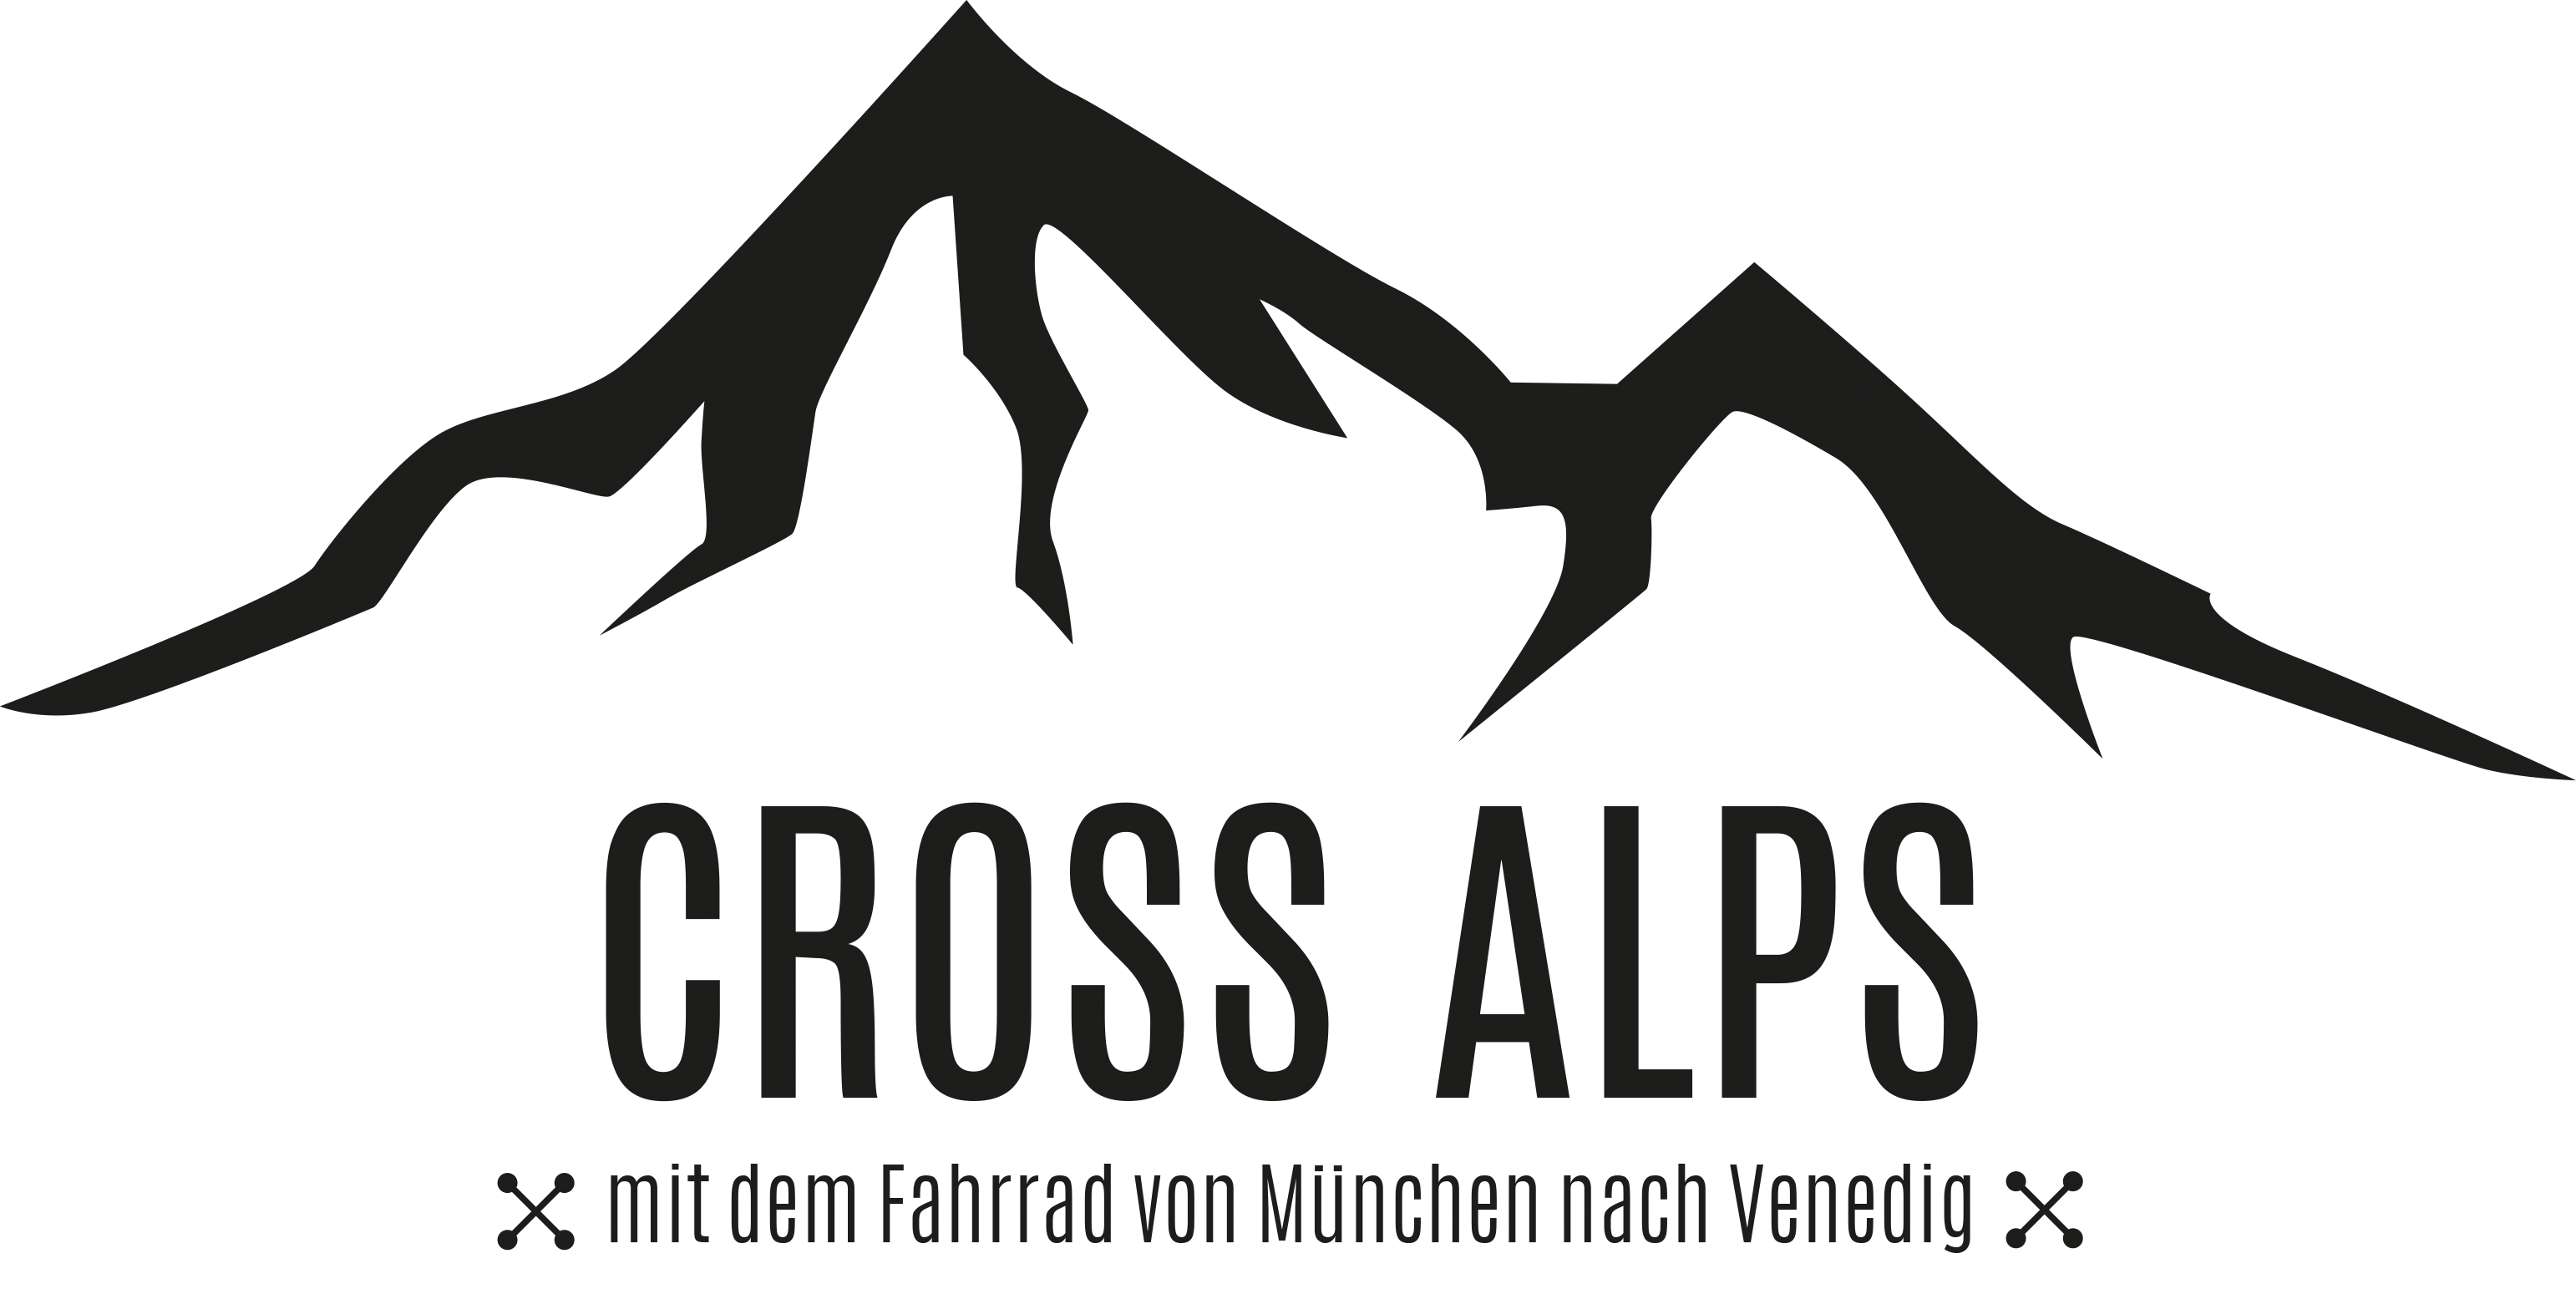 CrossAlps